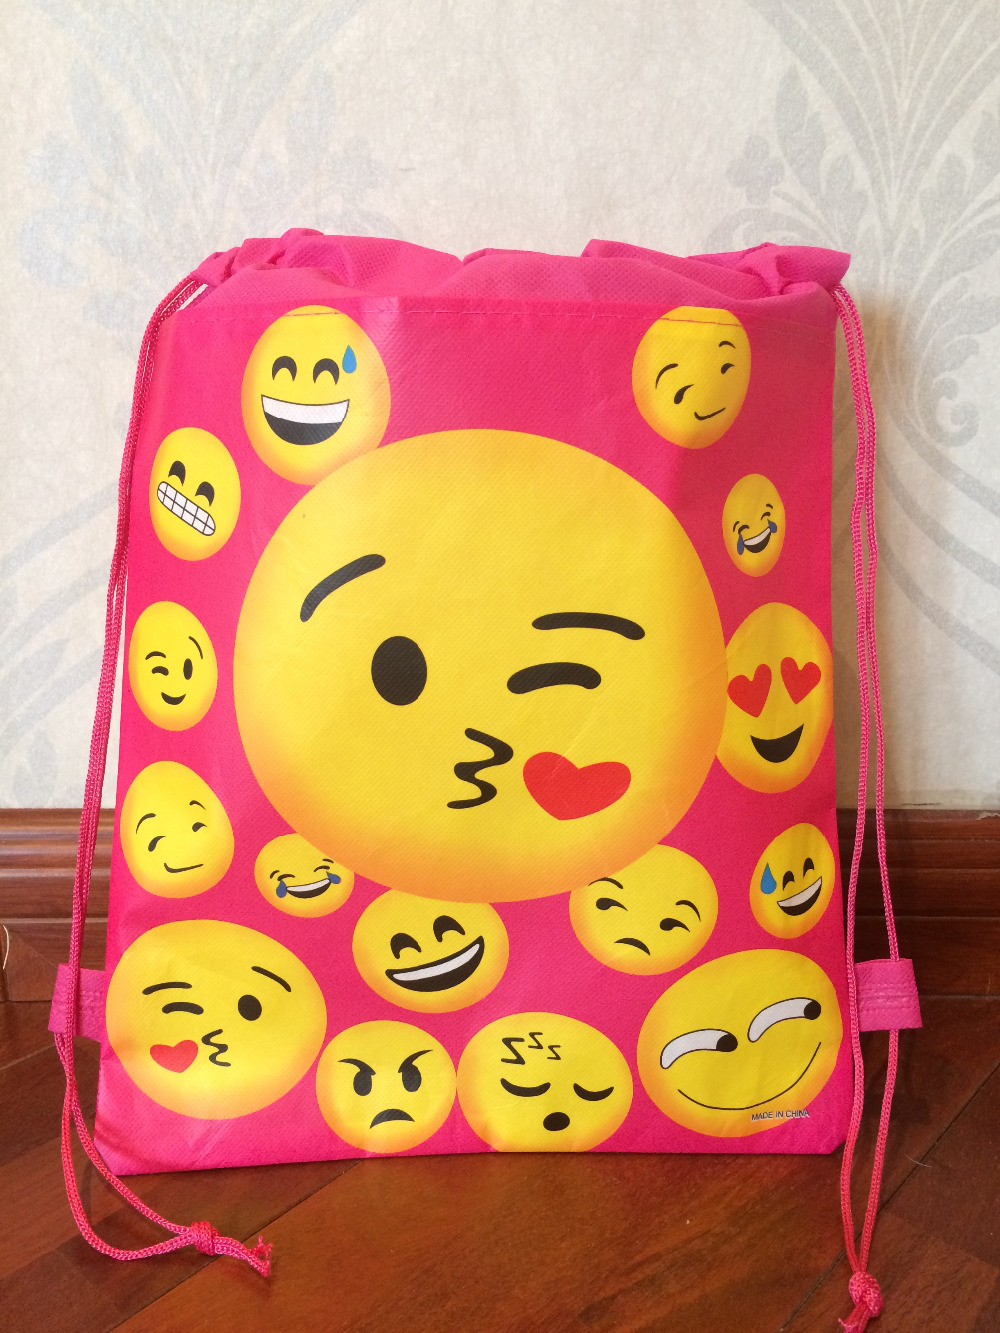 zoo animal sweetheart backpack Toddler pouch non-woven string shoe shourlder school bag for boy and girls birthday party gift zoo animal sweetheart backpack toddler pouch non woven string shoe shourlder school bag for boy and girls birthday party gift